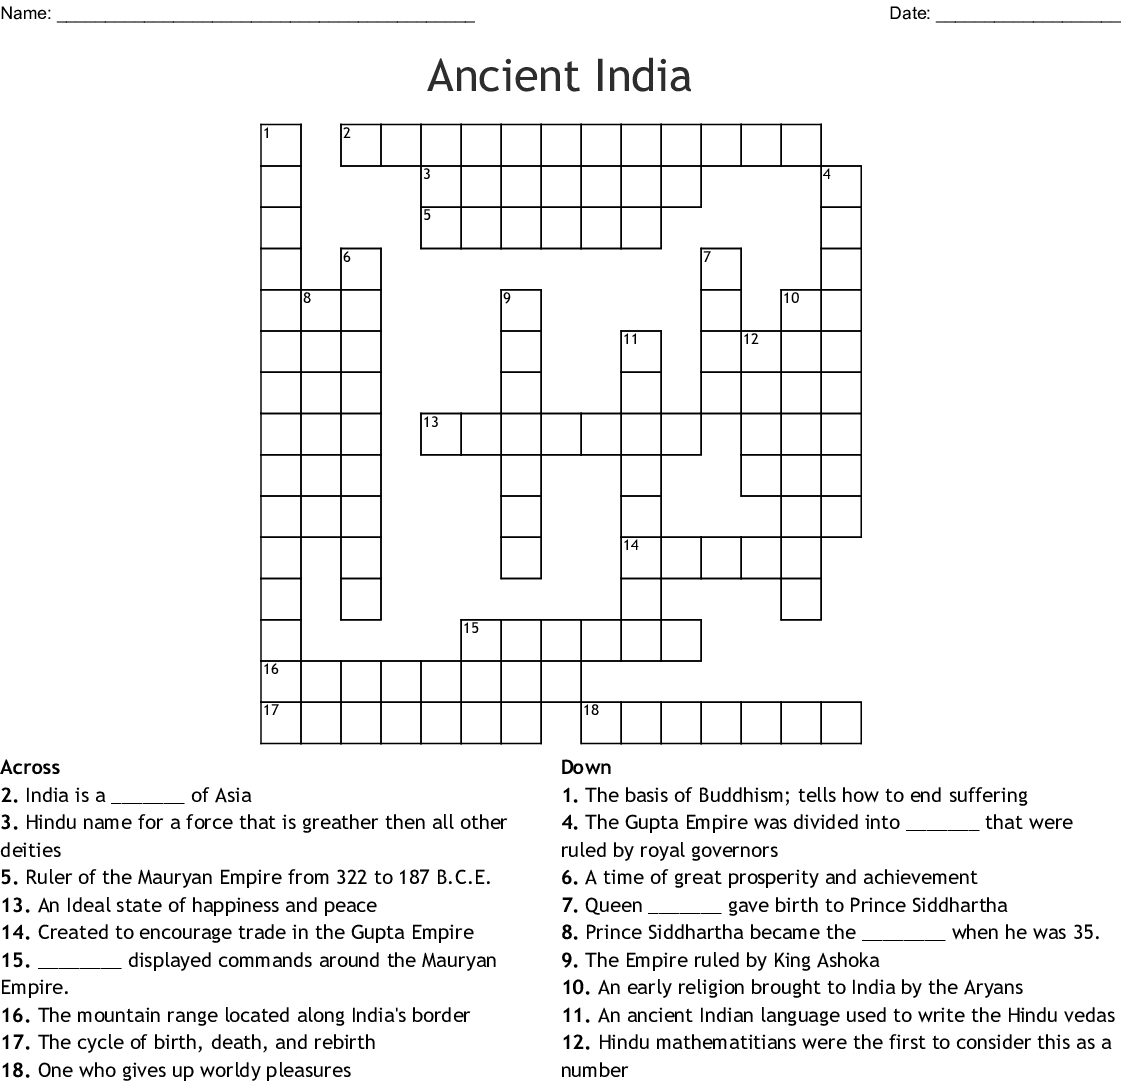 Ancient India Crossword Puzzle Answers